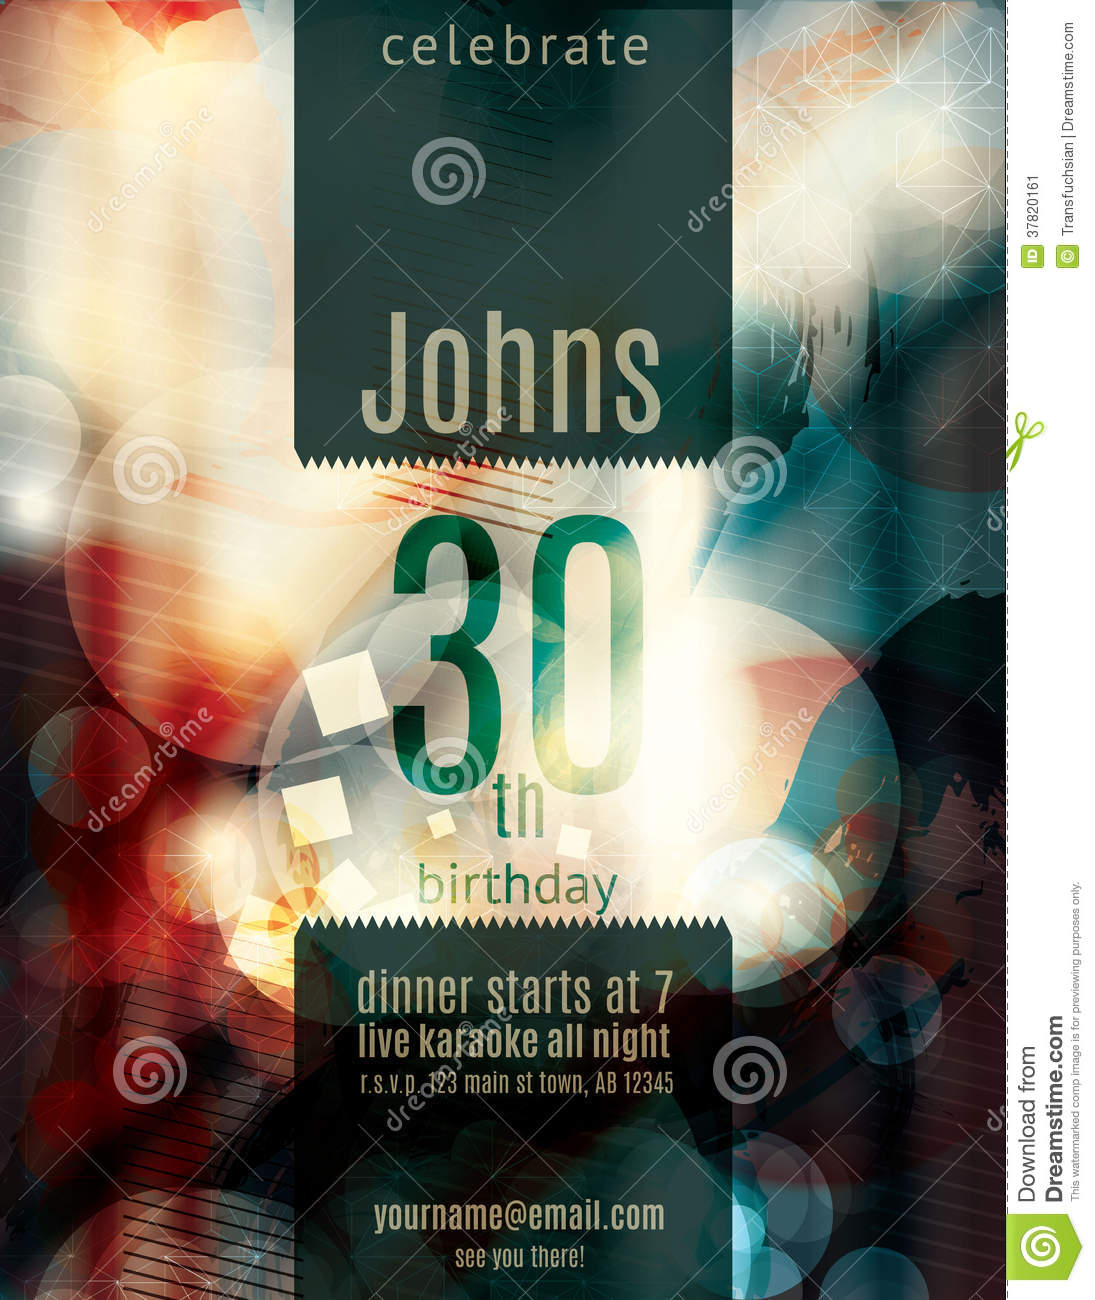 invitation flyer info blurry grunge abstract party invitation flyer stock image image